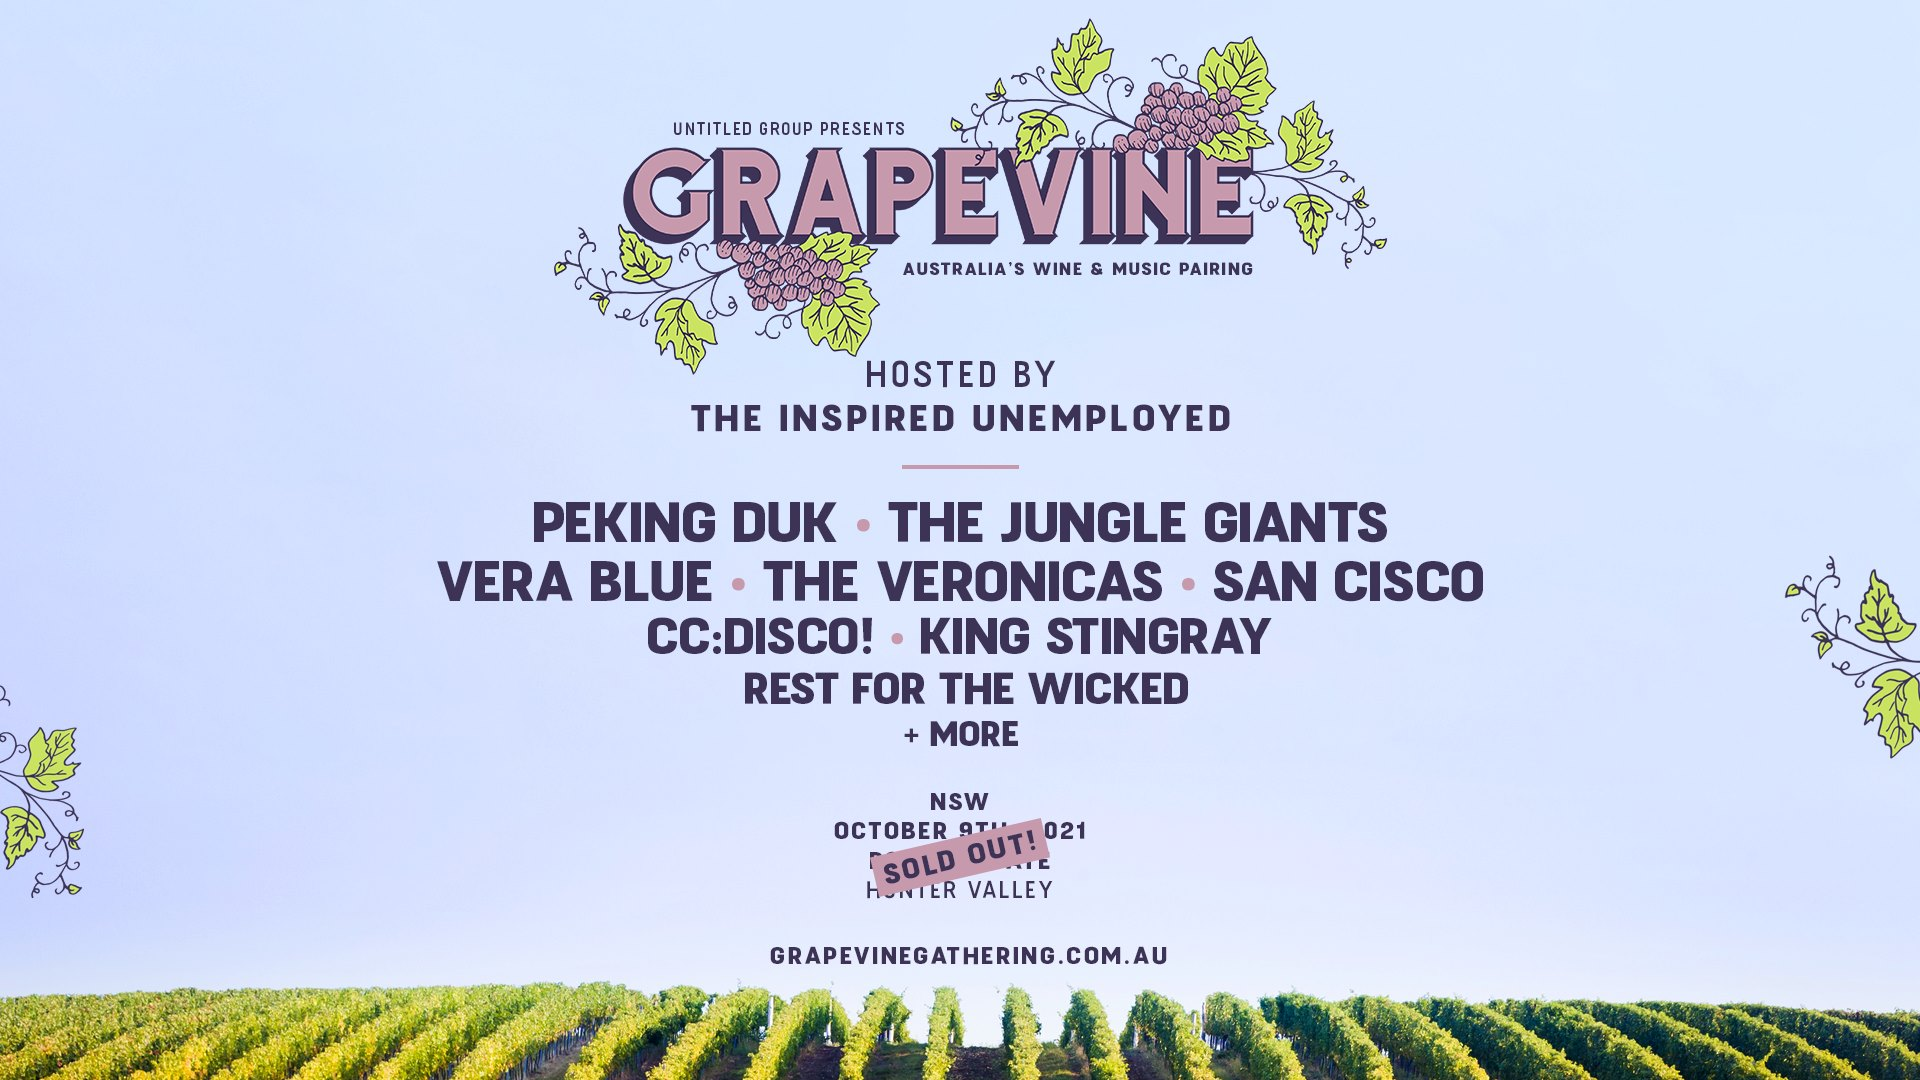 Grapevine Gathering 2021 – NSW (SOLD OUT)